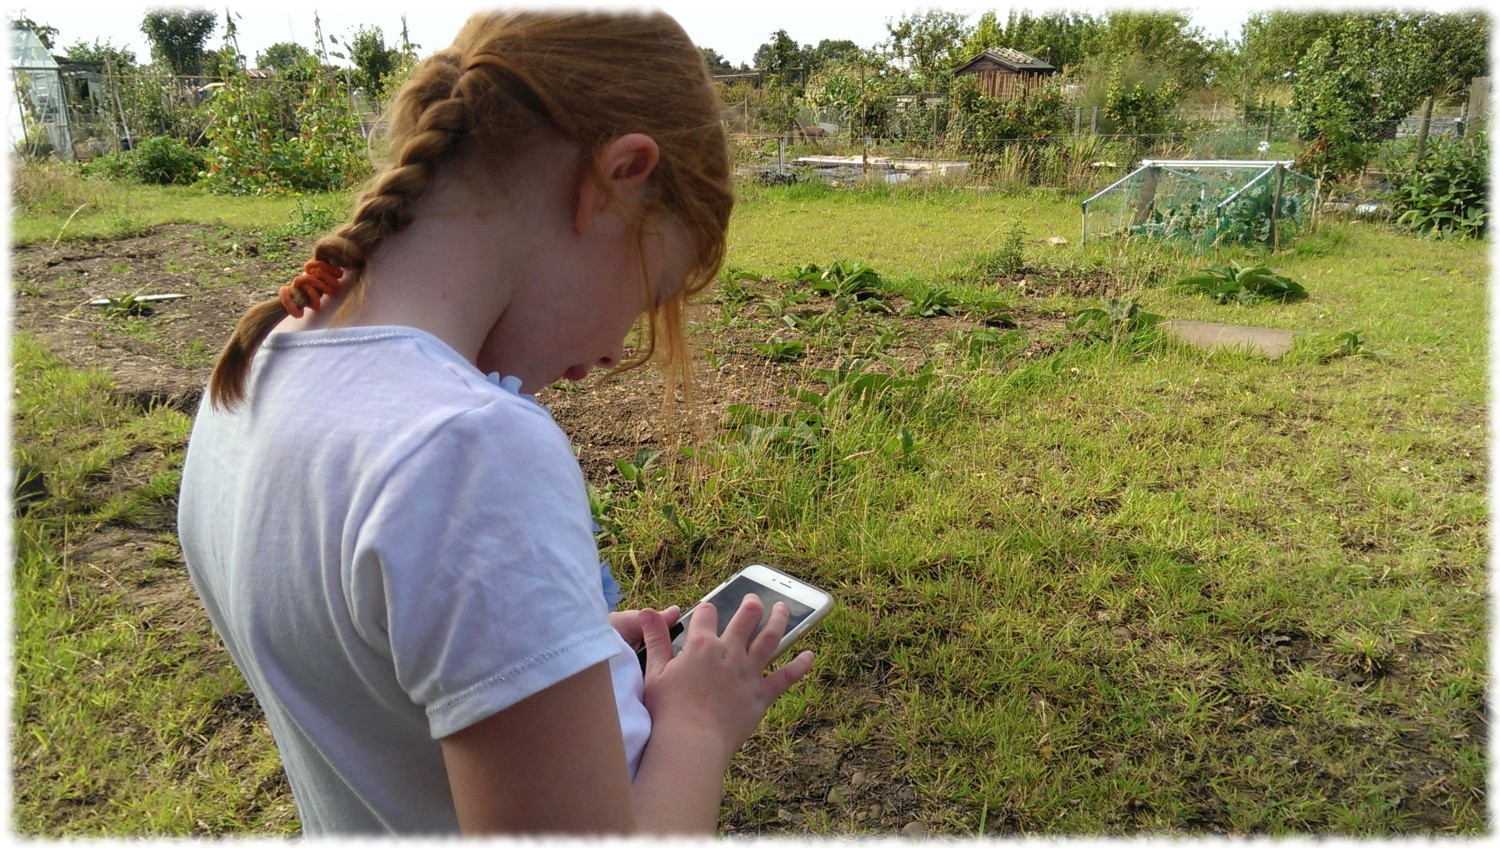 Our vegetable garden planning software is fully functional on phones and tablets